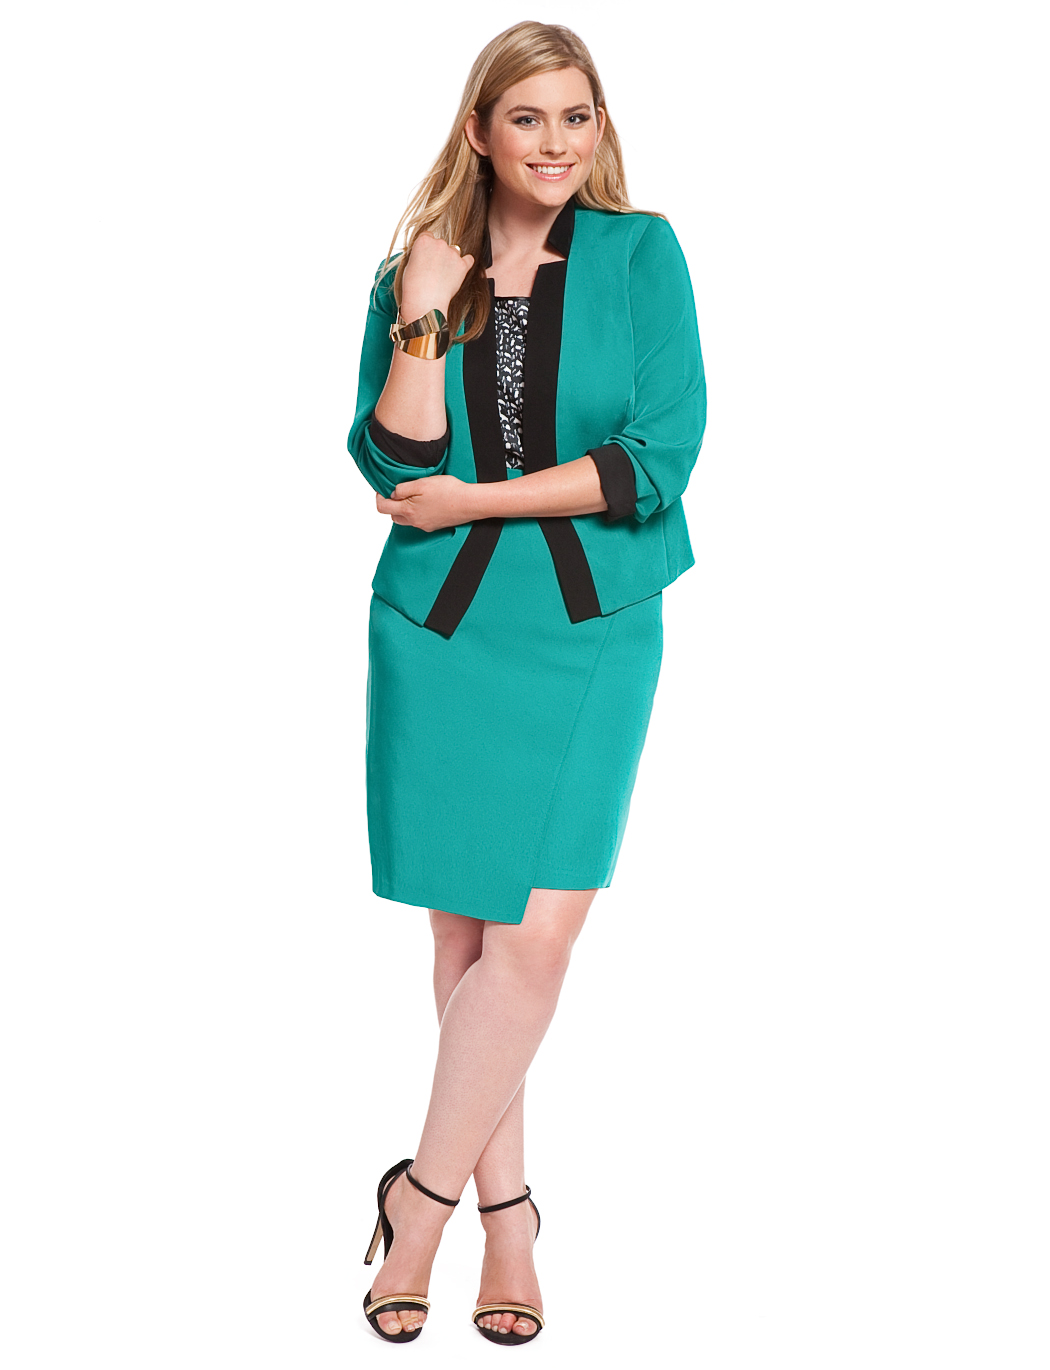 WORK WEAR WEDNESDAY: THE RETURN OF THE SKIRT SUIT (PLUS ...